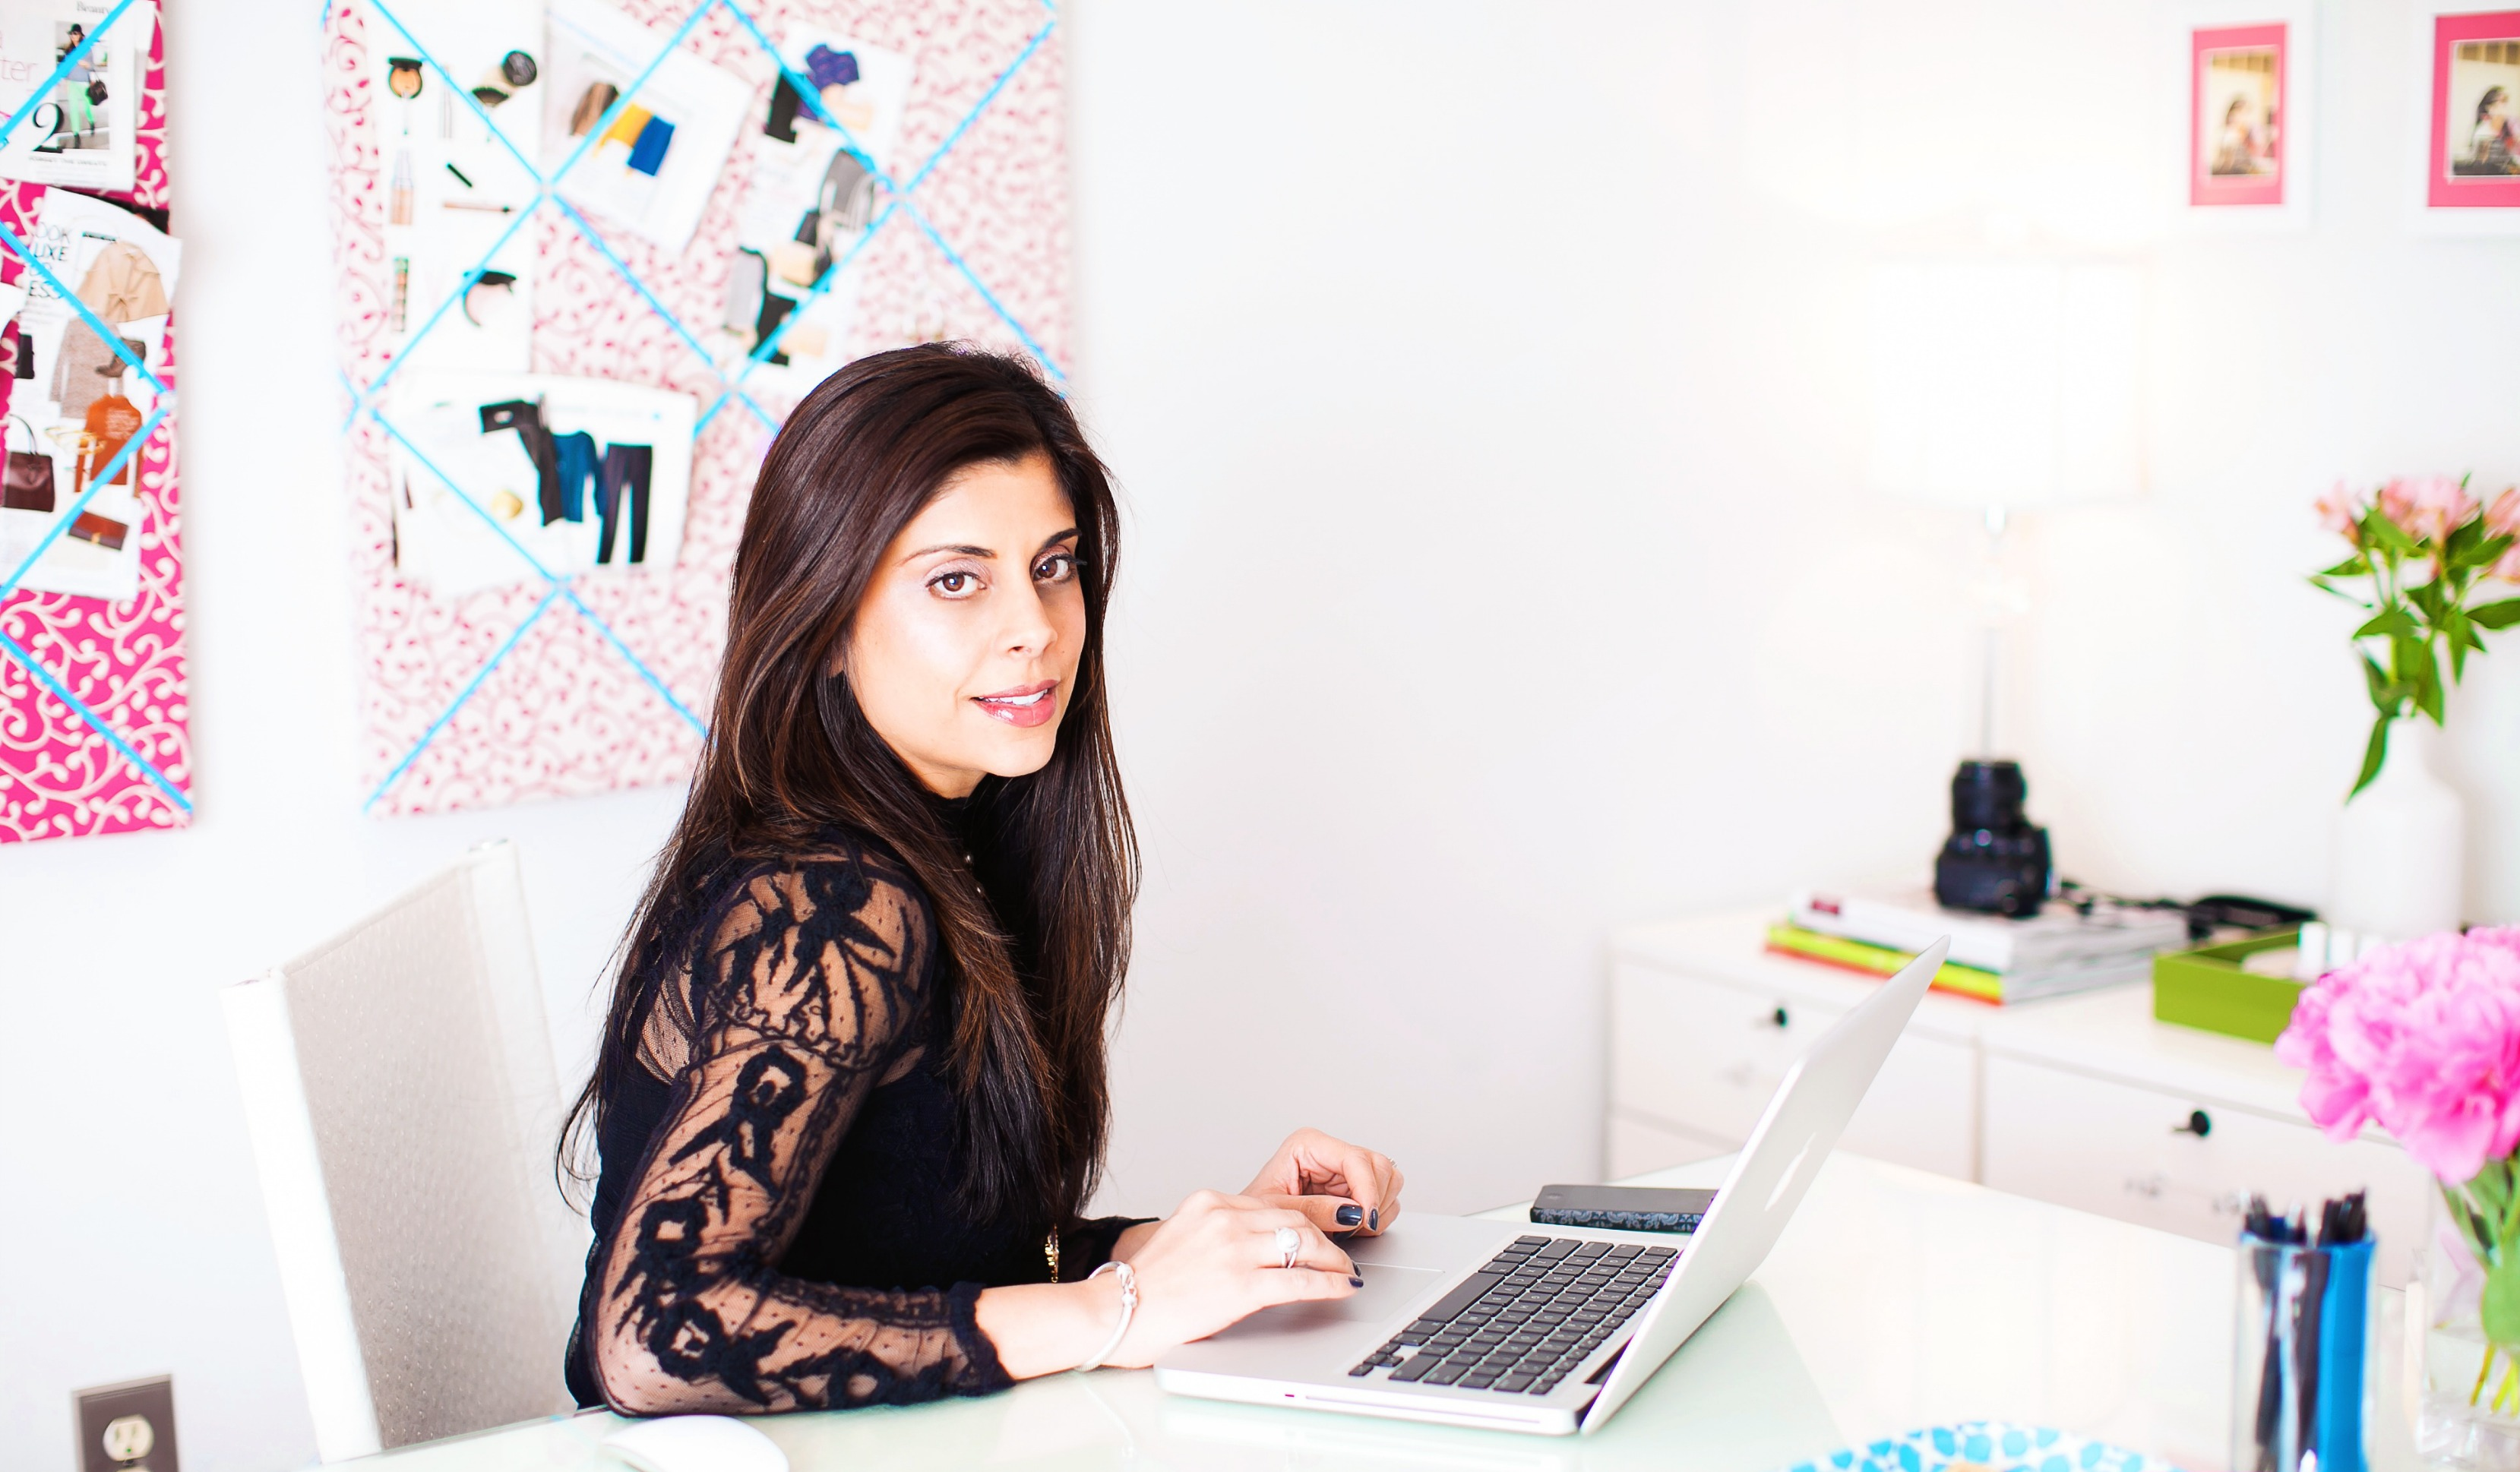 Naina Singla, Entrepreneur, Fashion Stylist, On-Air Expert And Editor of STYLE'N.com